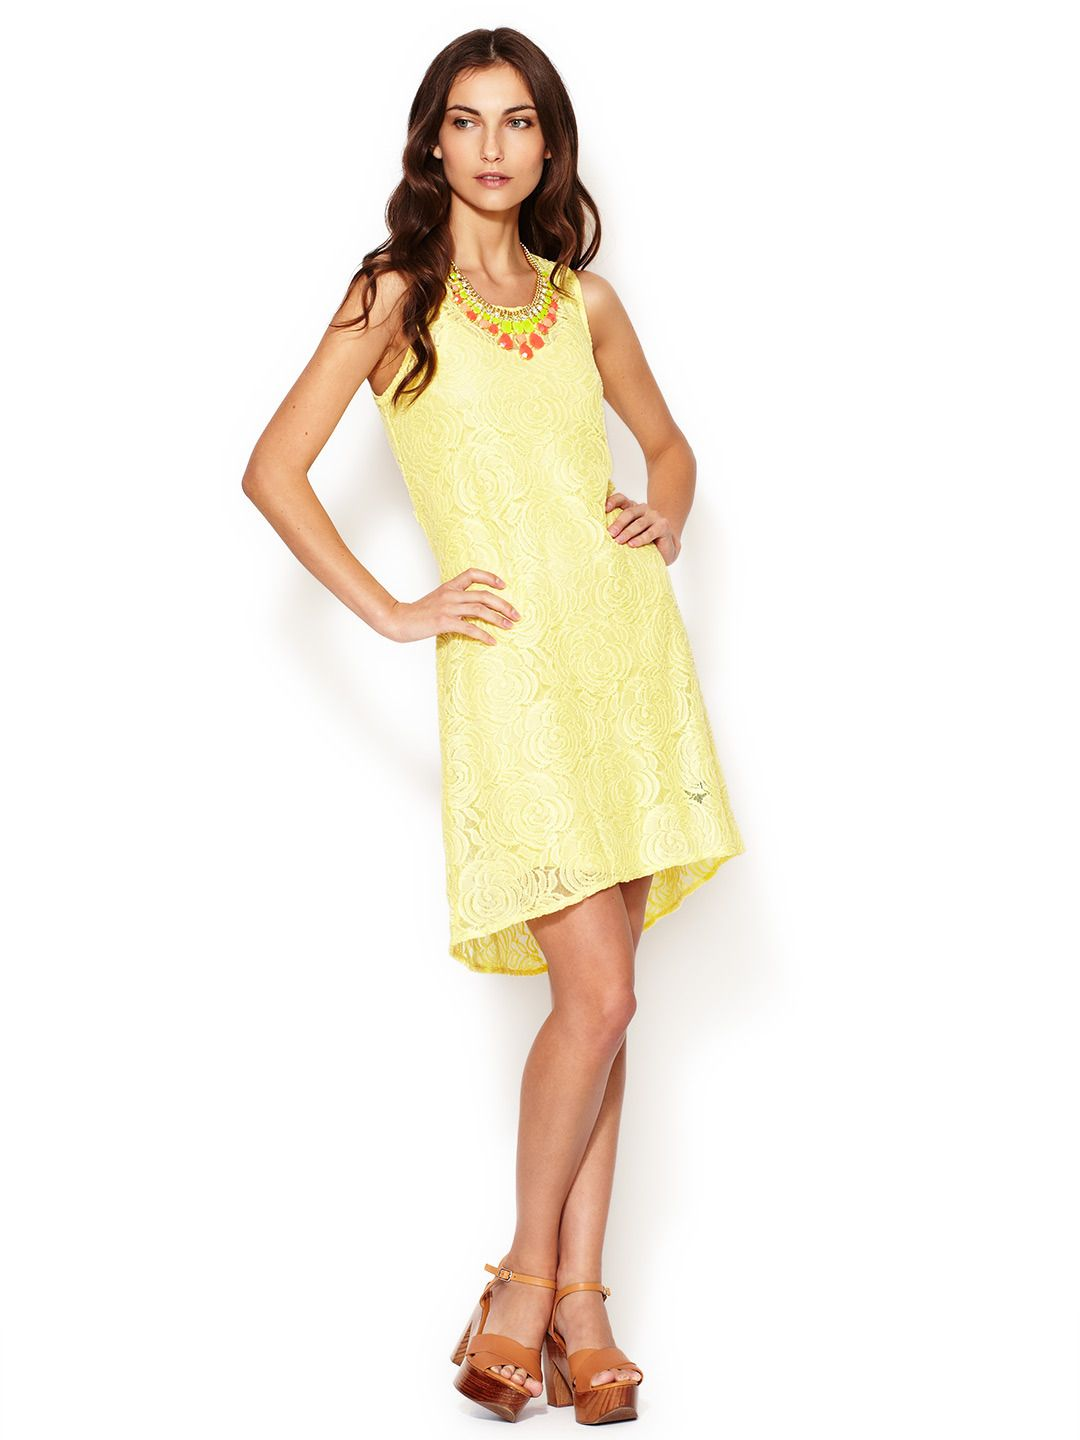 Embroidered lace belted dress by patterson j kincaid at gilt